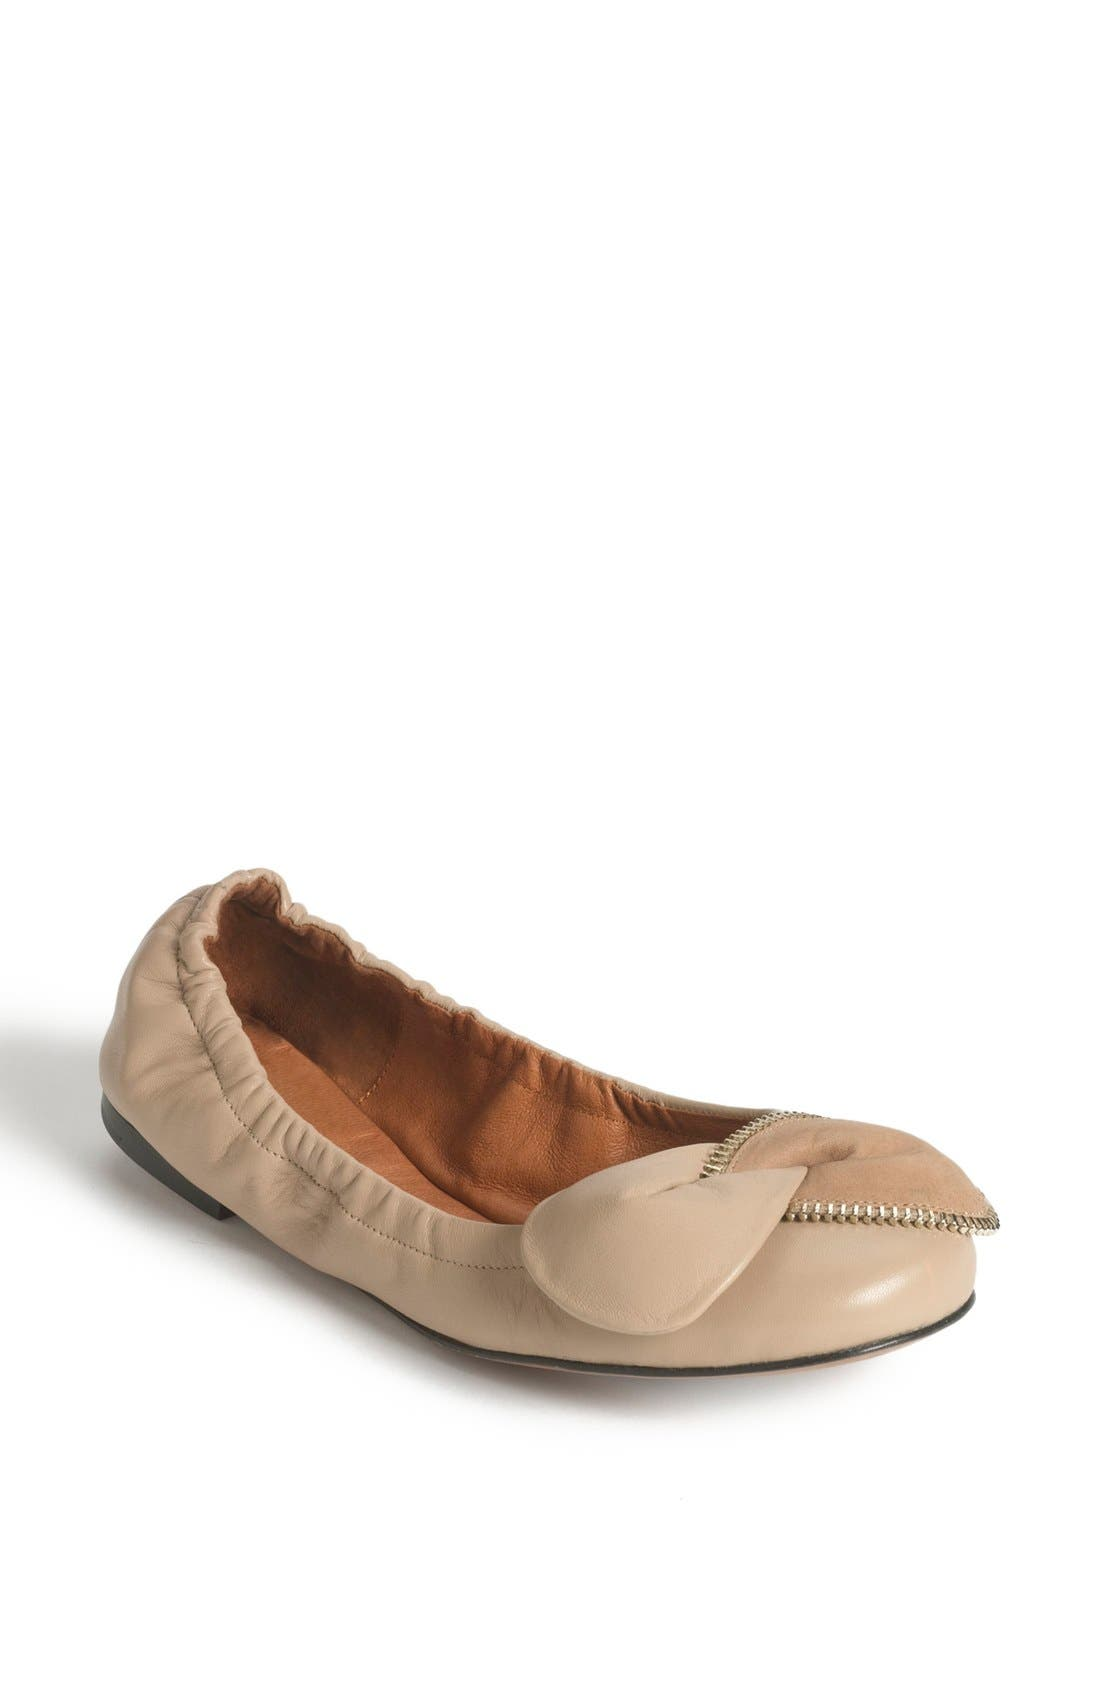 Alternate Image 1 Selected - See by Chloé 'Clara' Ballerina Flat